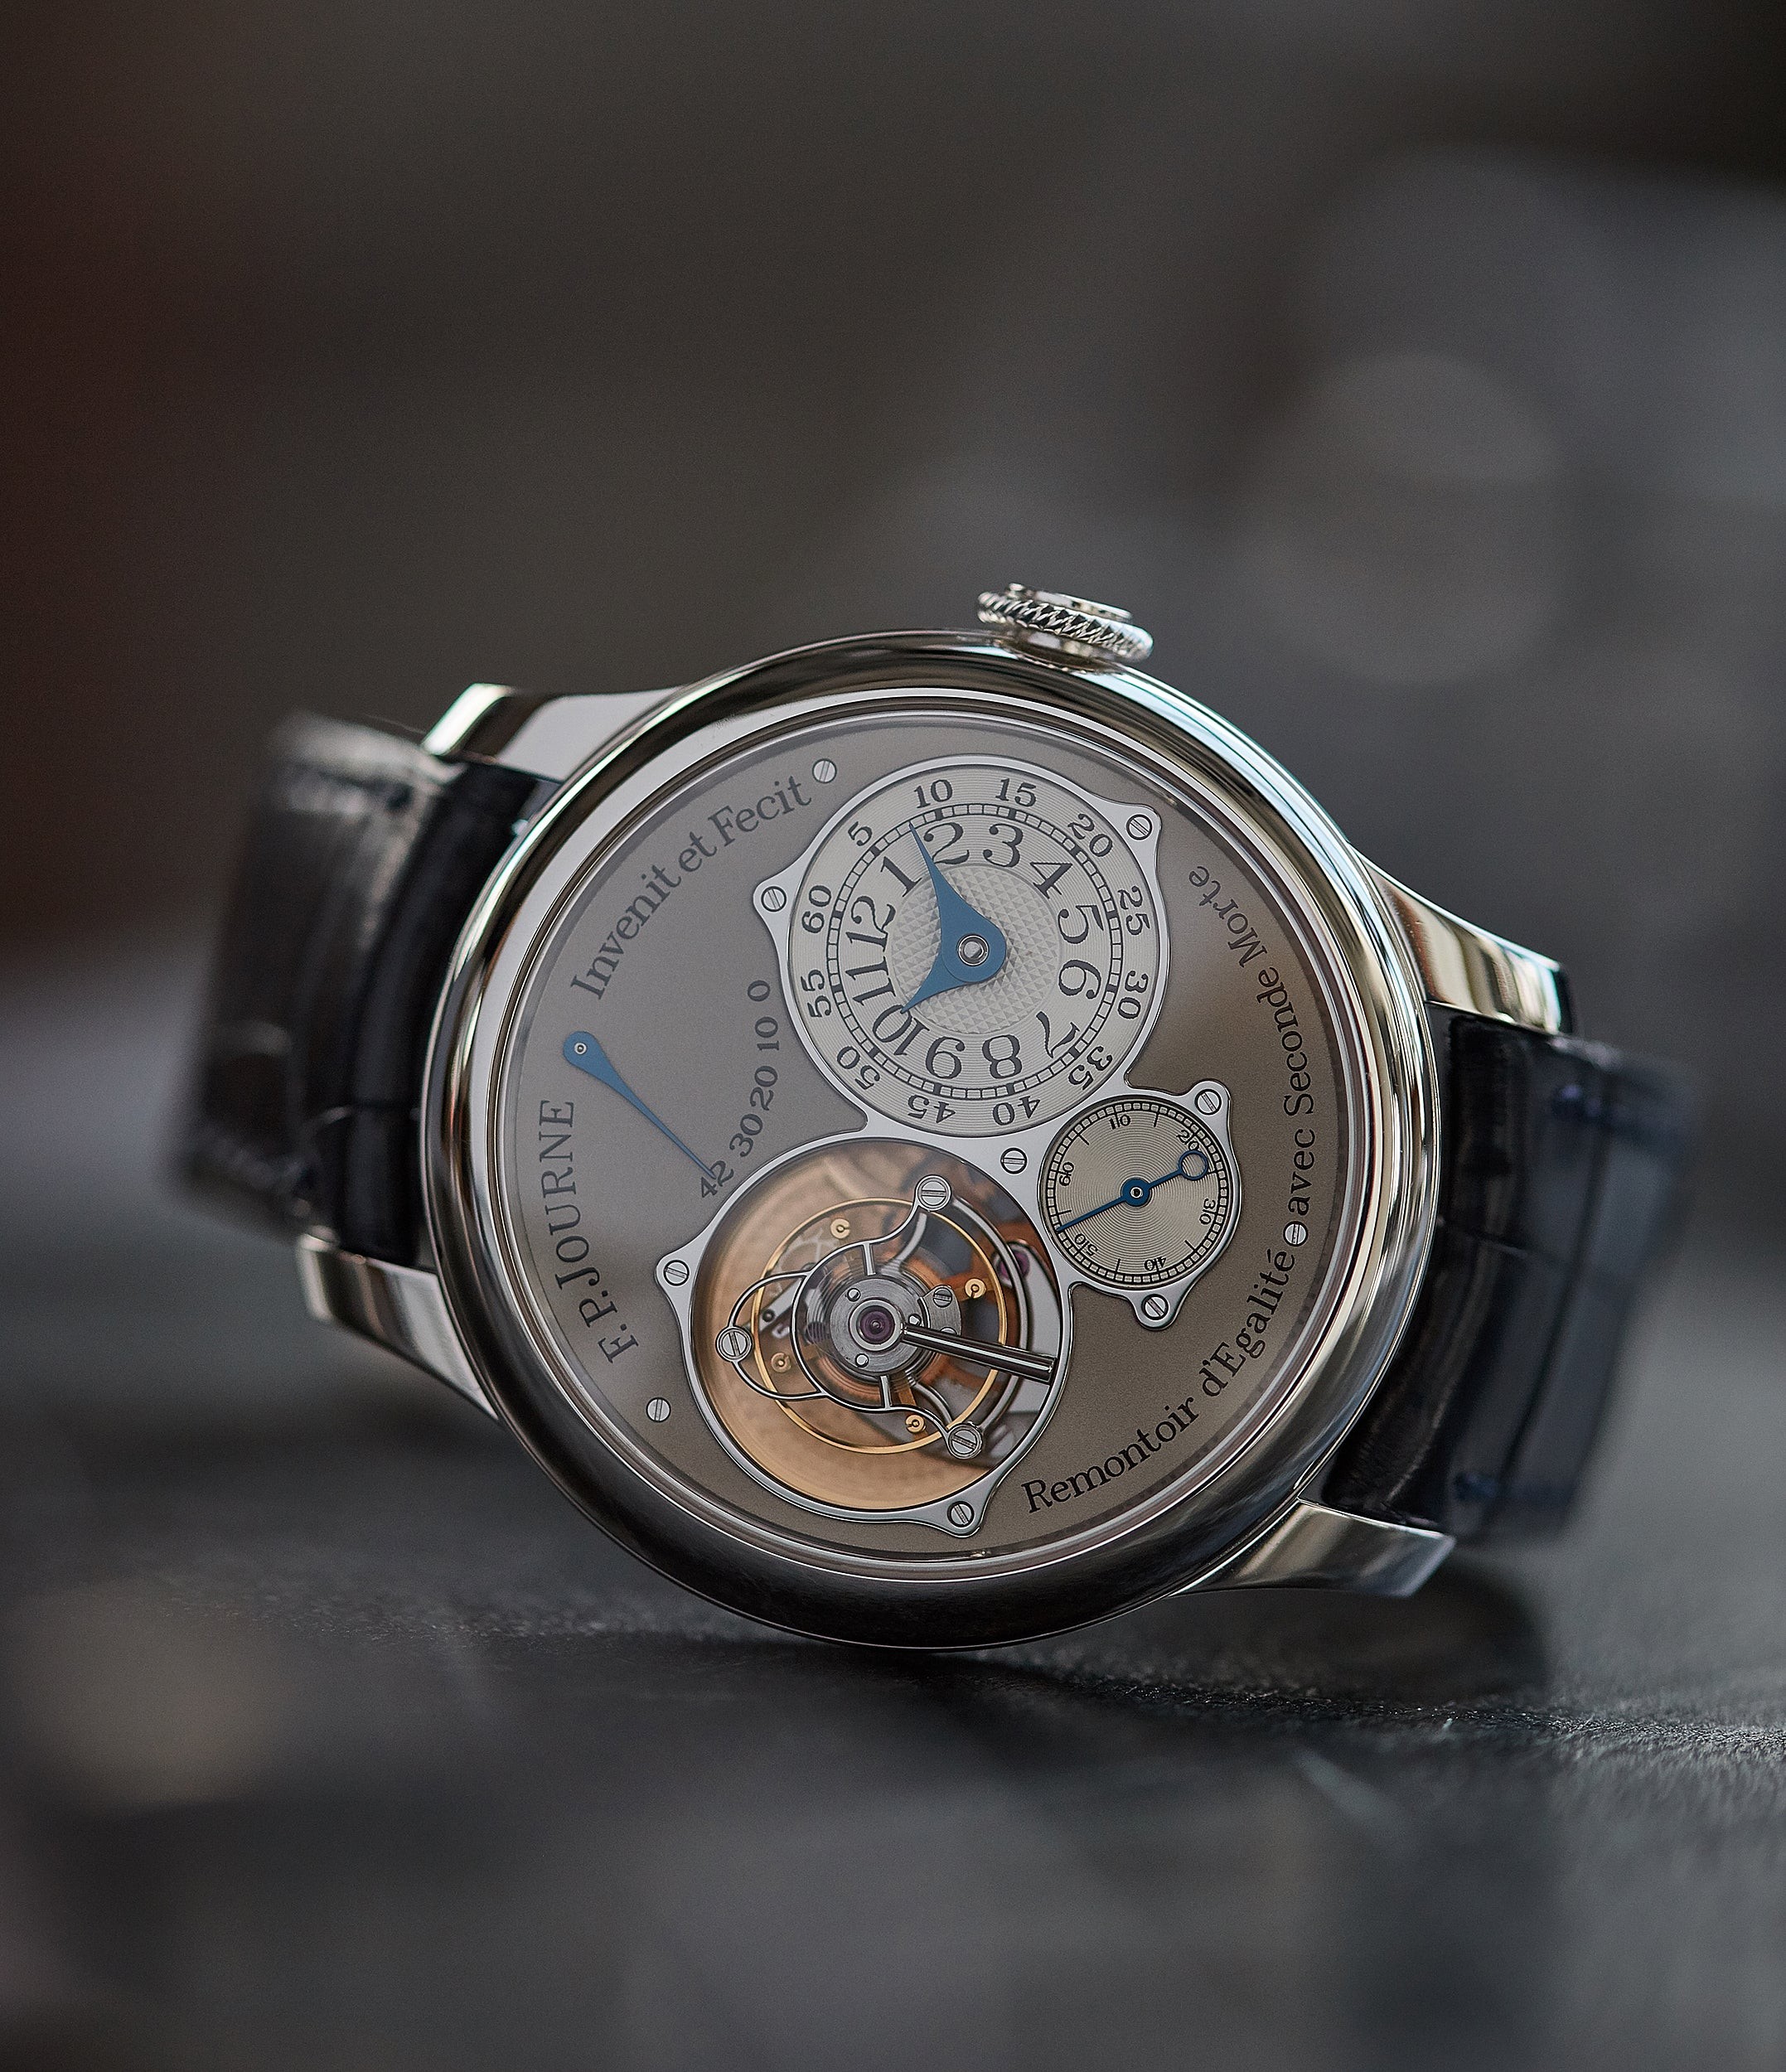 pre-owned F. P. Journe Tourbillon Souverain TN dead-beat seconds 40mm platinum watch for sale online at A Collected Man London UK specialist of rare watches